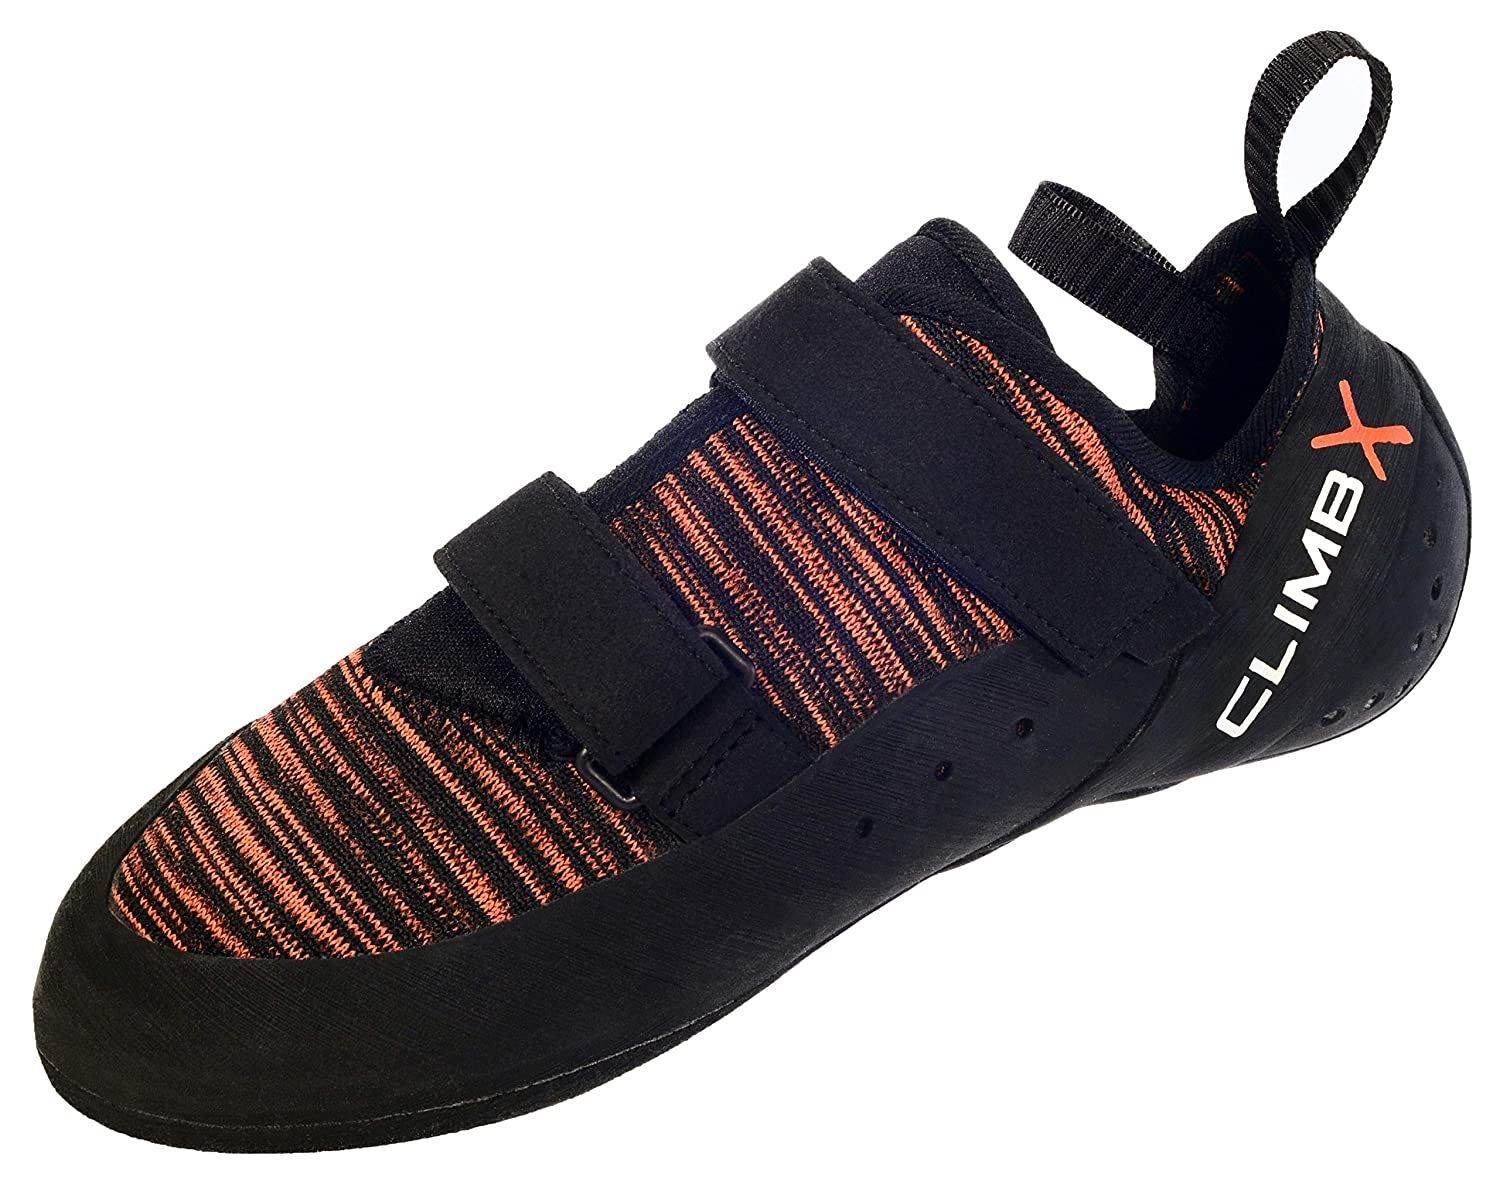 Climb X Gear Icon Rock Climbing Shoe Knit 2019 CMX-IK